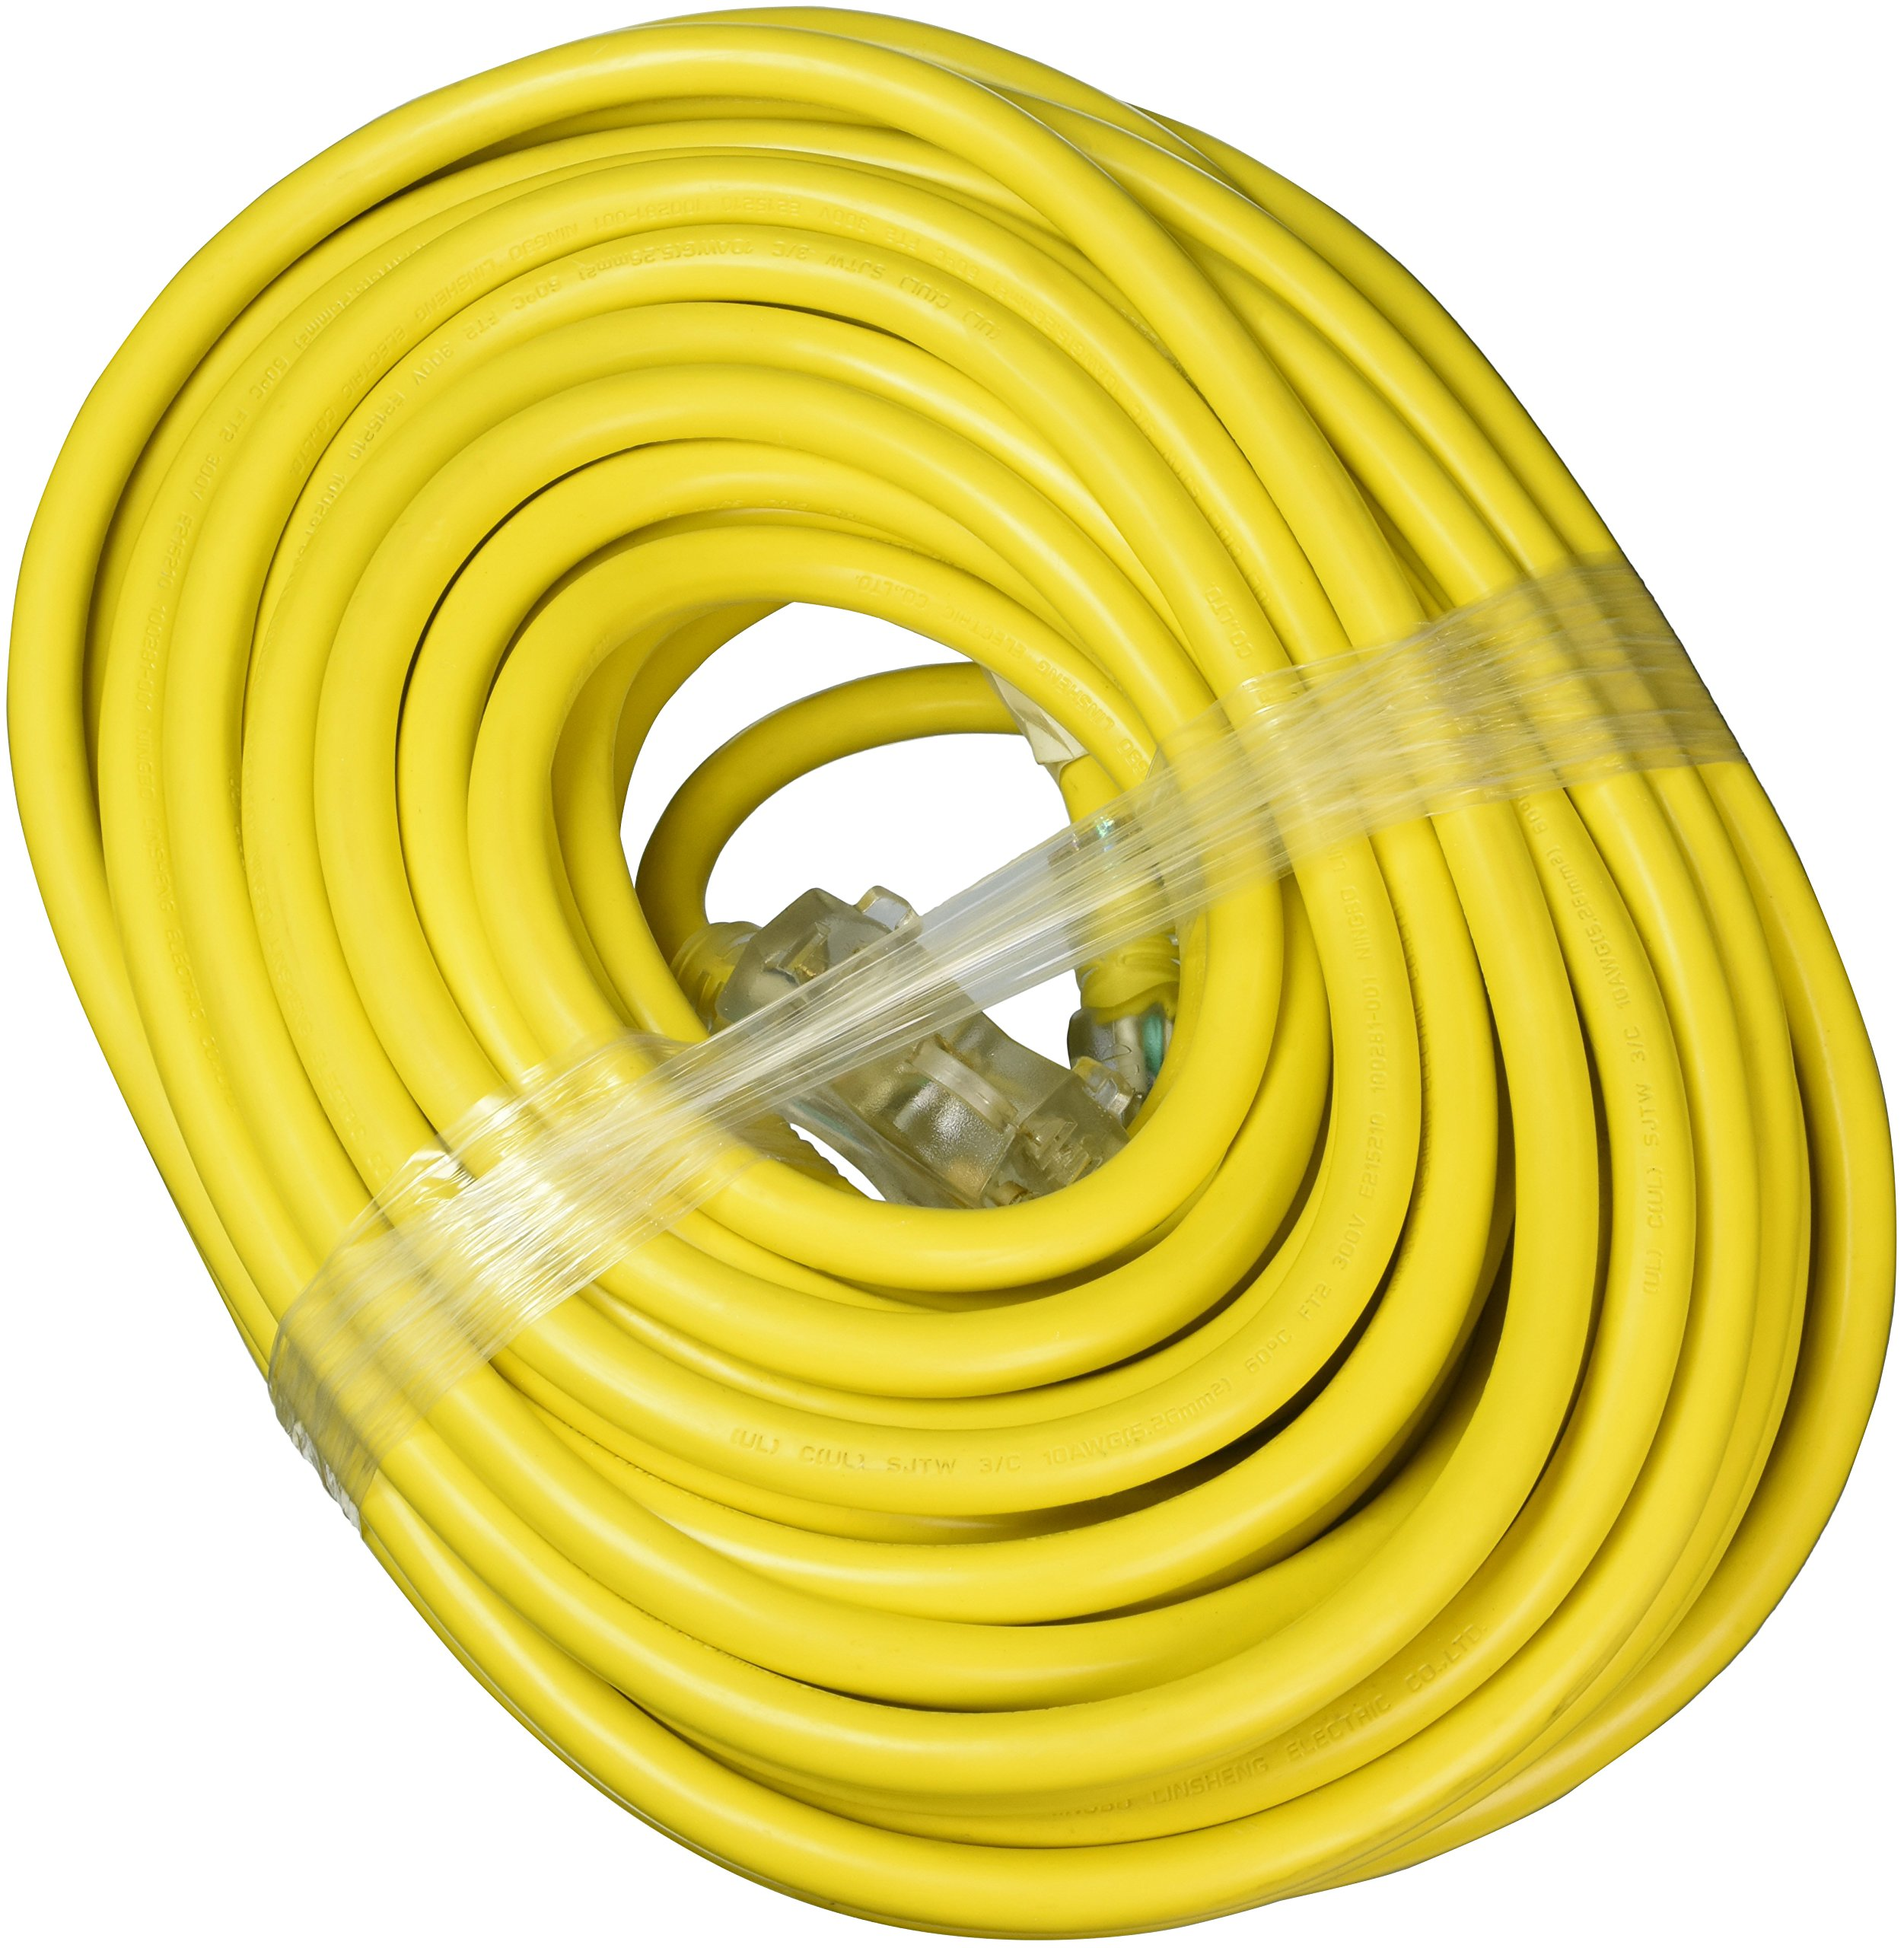 ATE Pro. USA 70061 Extension Cord, 100', 10 Gauge, 3-Prong by ATE Pro. USA